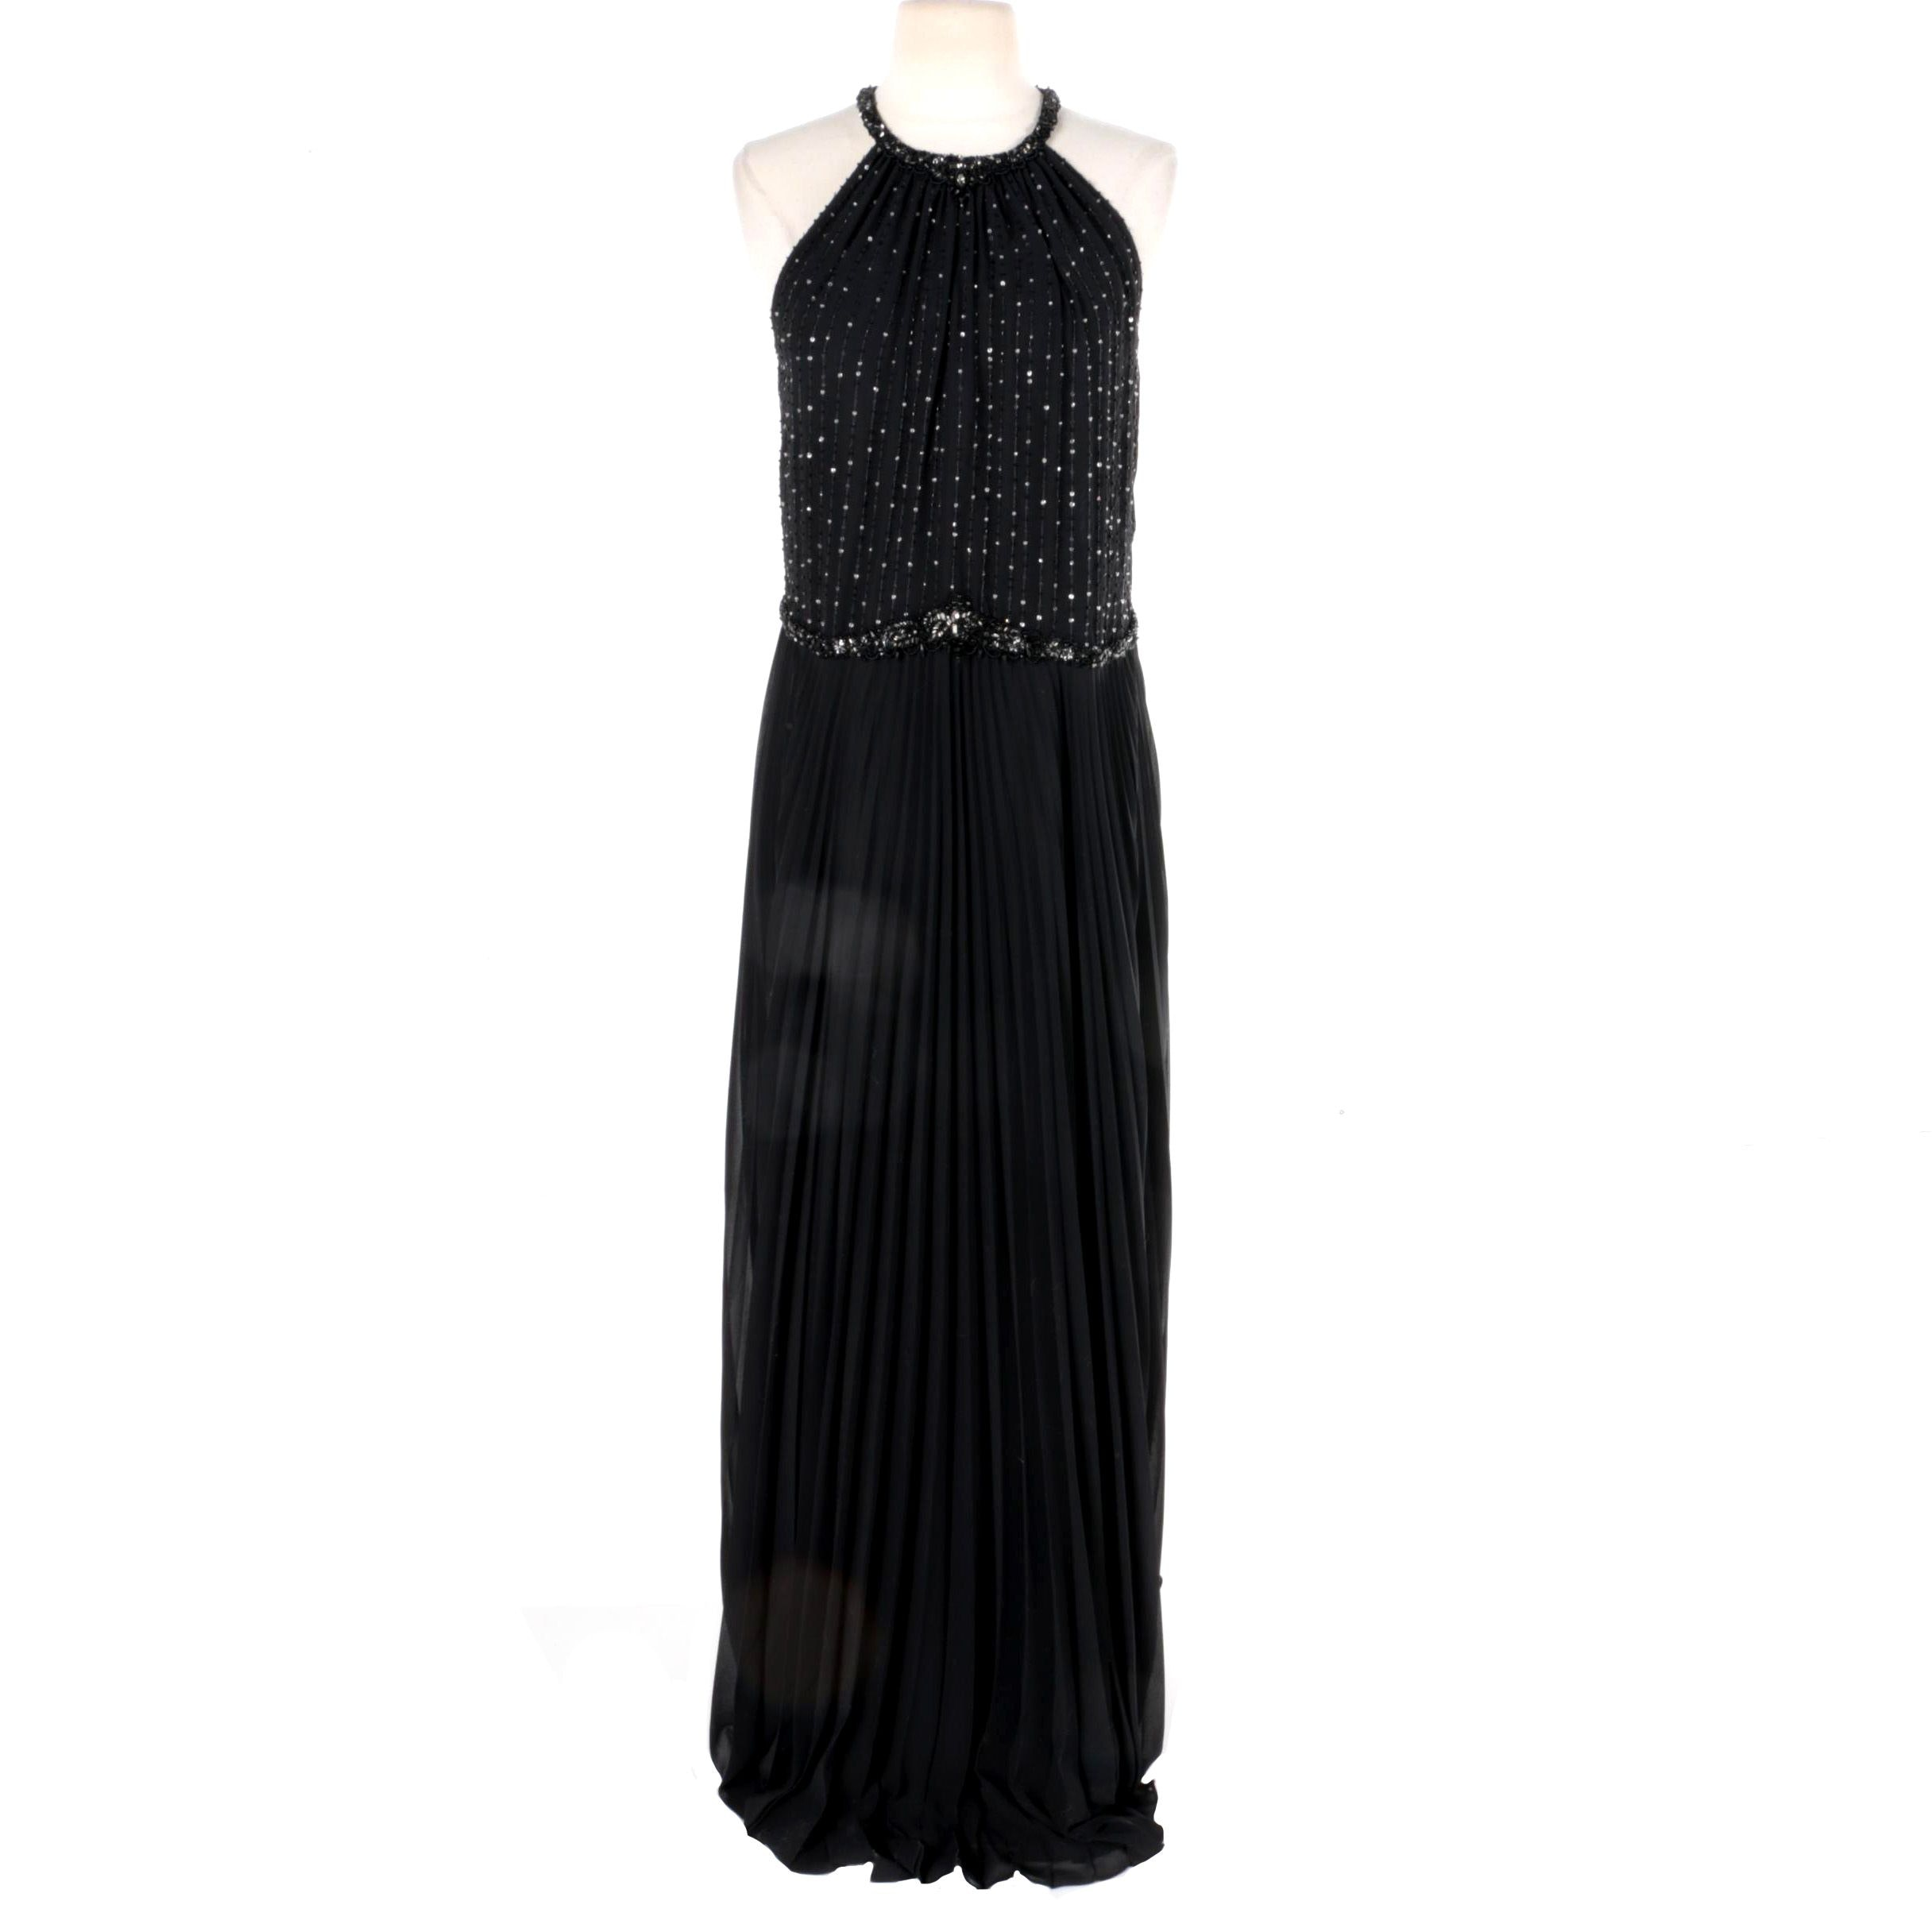 Escada Black Sleeveless Evening Dress